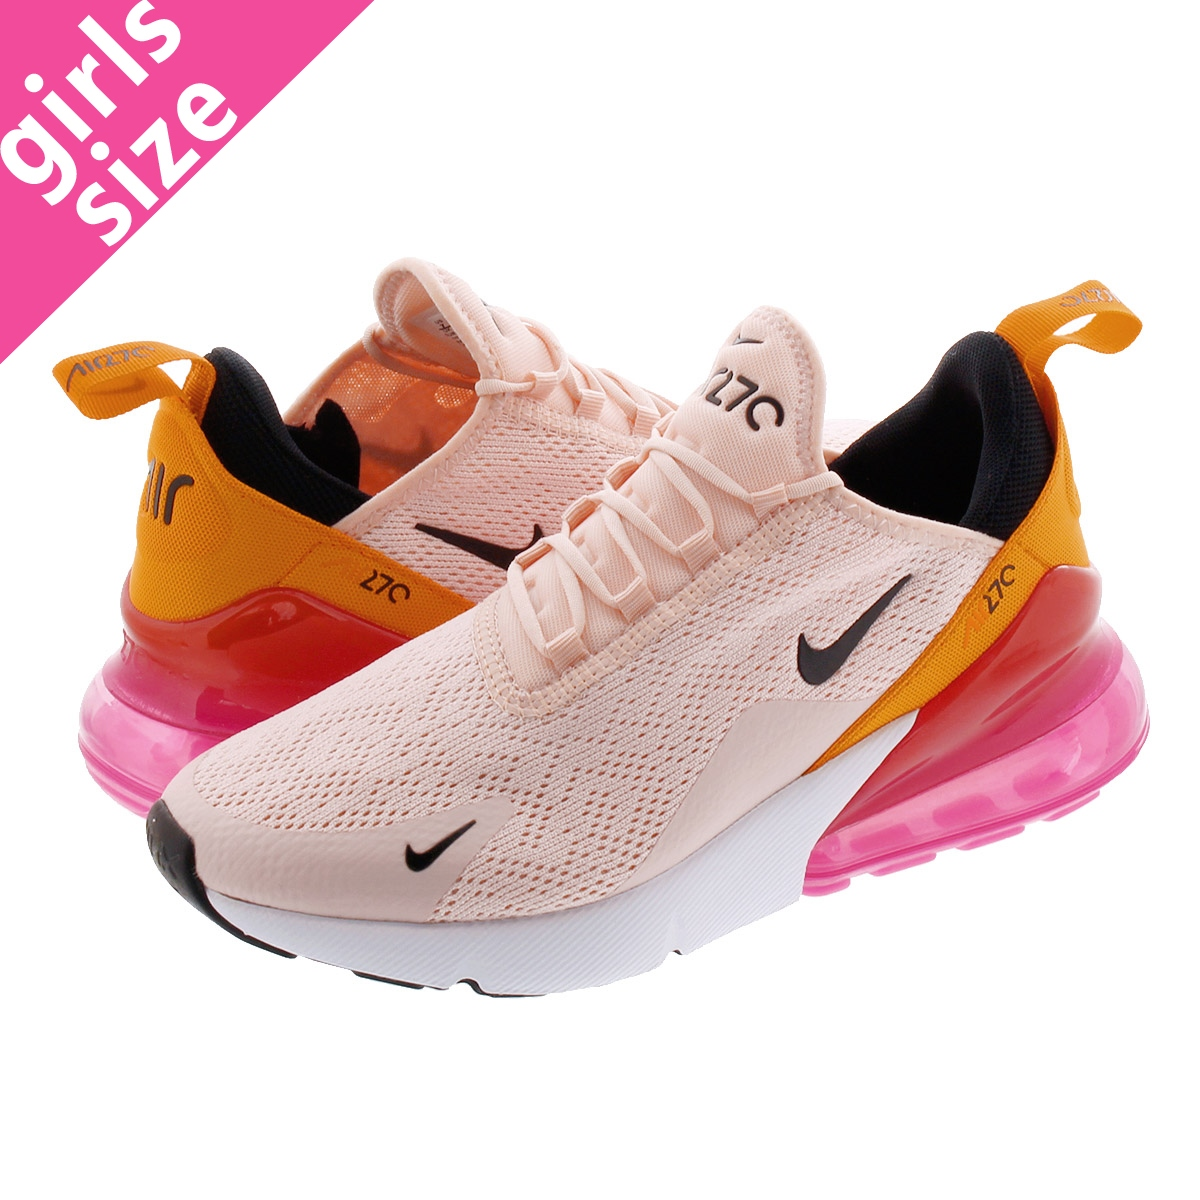 check out 1098f 3f8d8 NIKE WMNS AIR MAX 270 Nike women Air Max 270 WASHED CORAL/BLACK/LASER  FUCHSIA ah6789-603